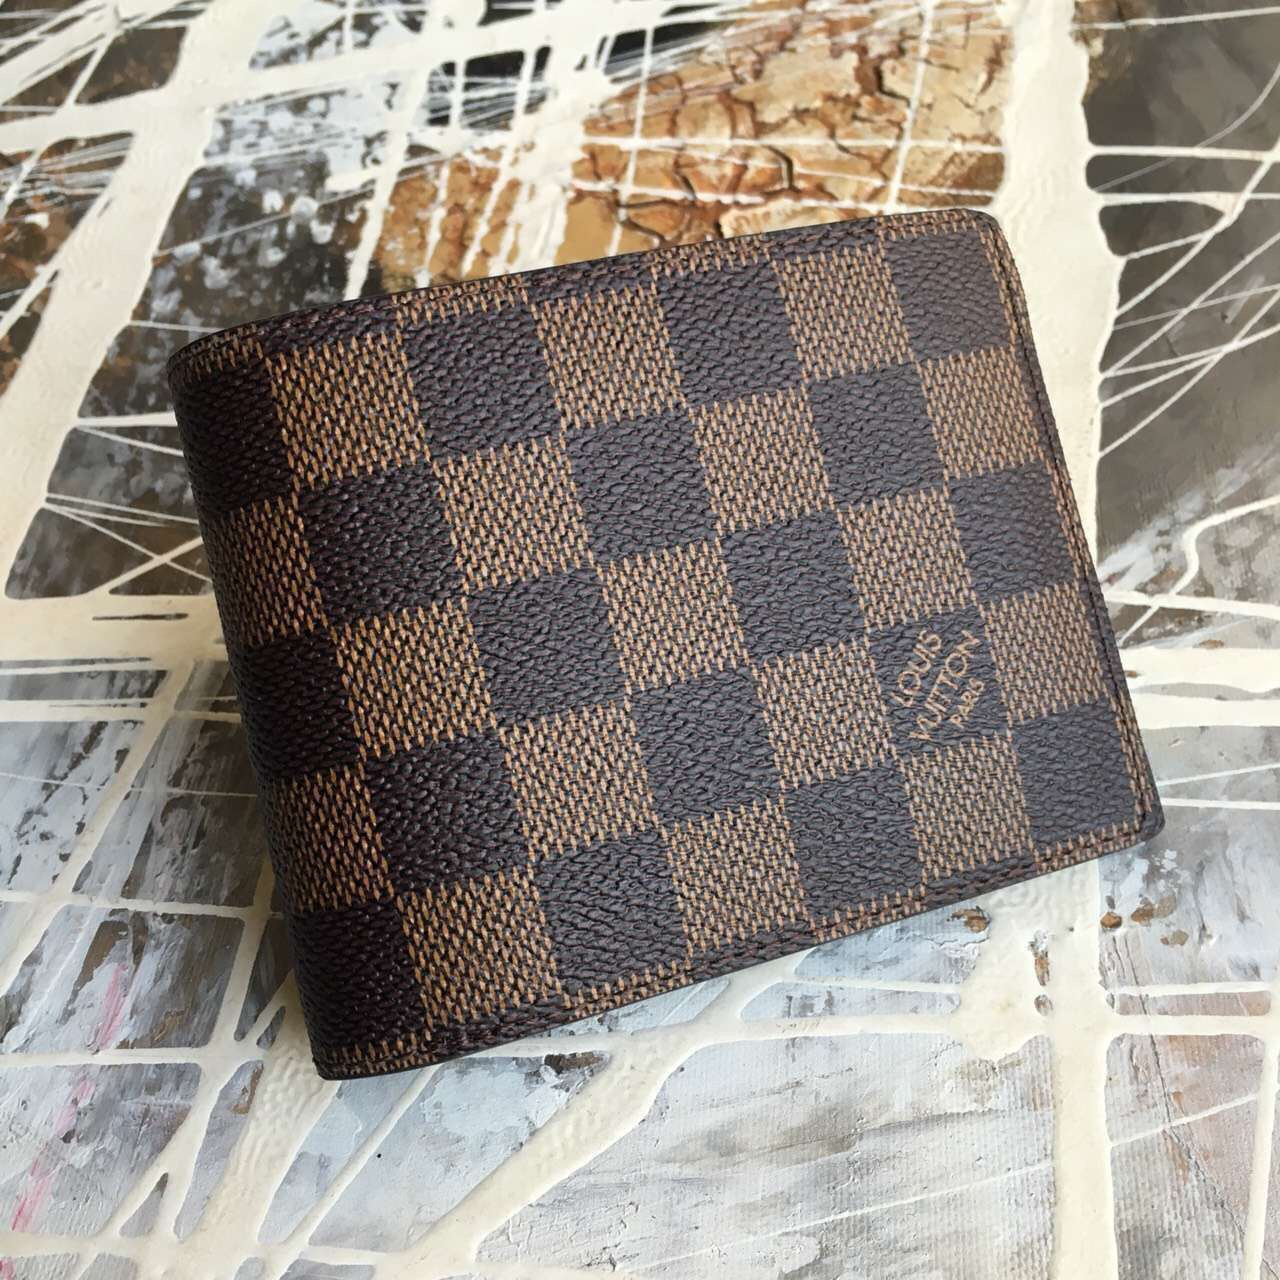 Louis vuitton Damier Azur canvas Multiple Wallet-N60895-VNLV158